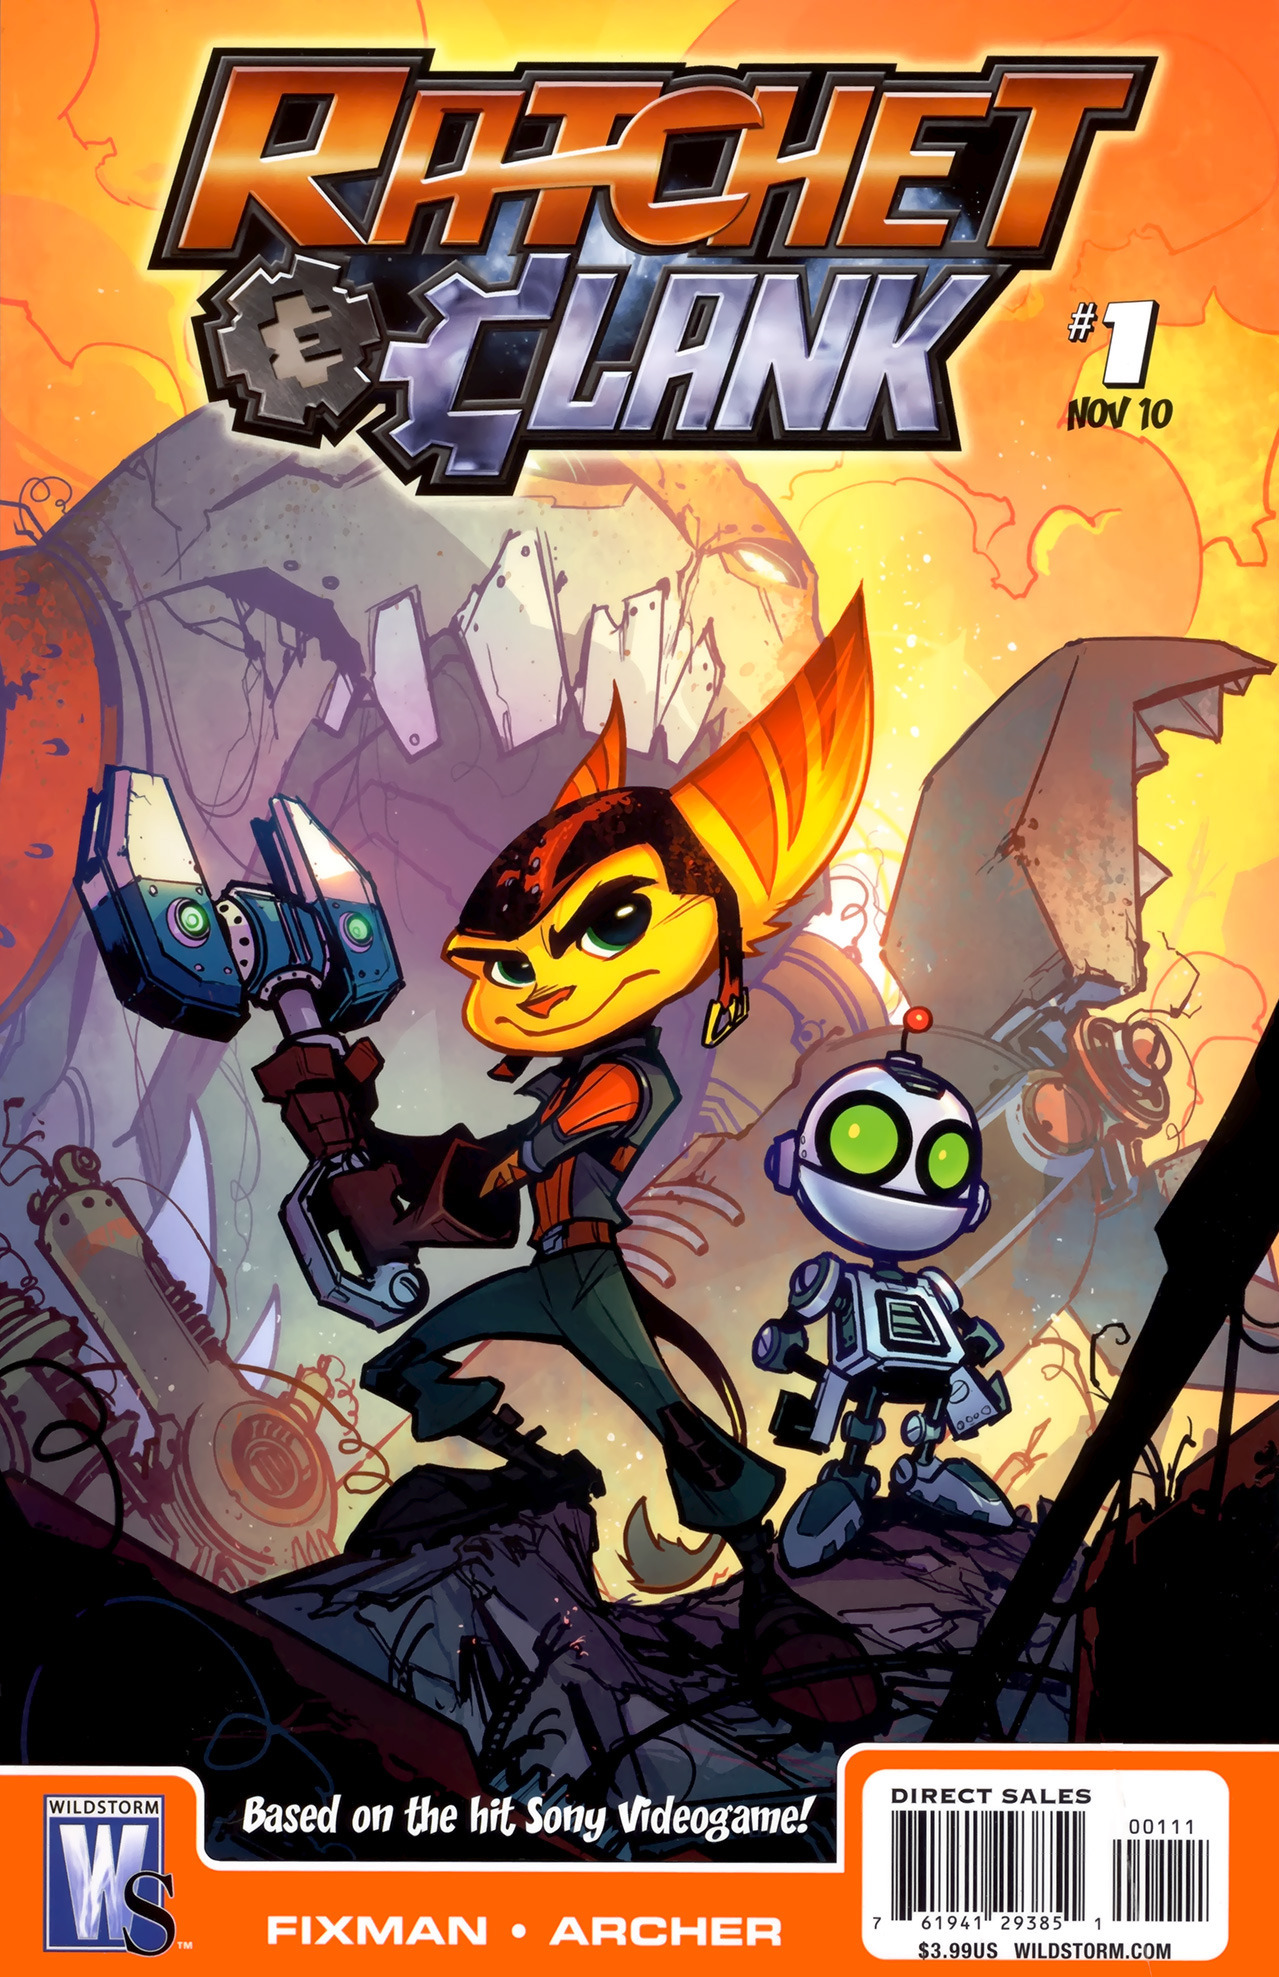 https://static.tvtropes.org/pmwiki/pub/images/ratchet_and_clank_comic_cover_issue_1.jpg